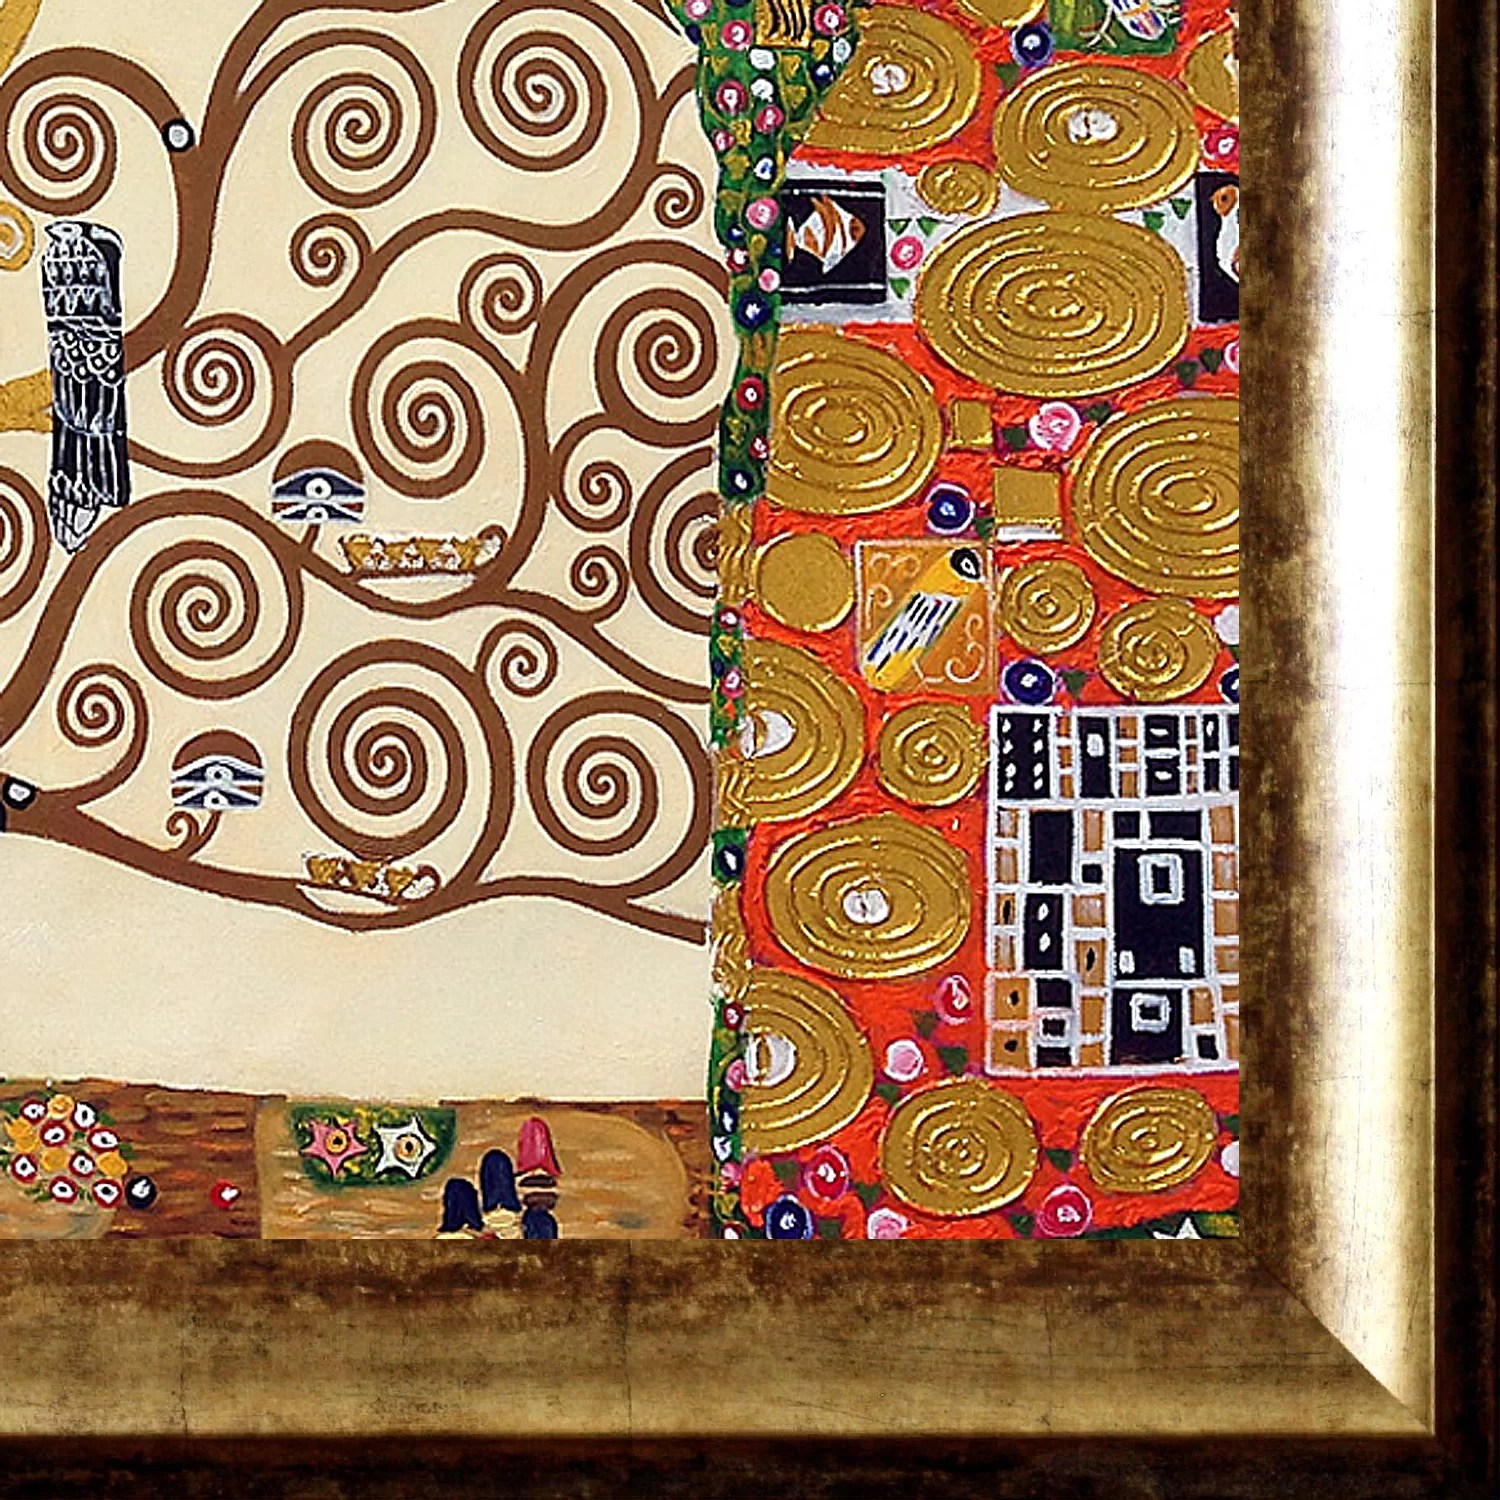 Klimt Fregio Stoclet La Pastiche 39the Tree Of Life Stoclet Frieze 39 By Gustav